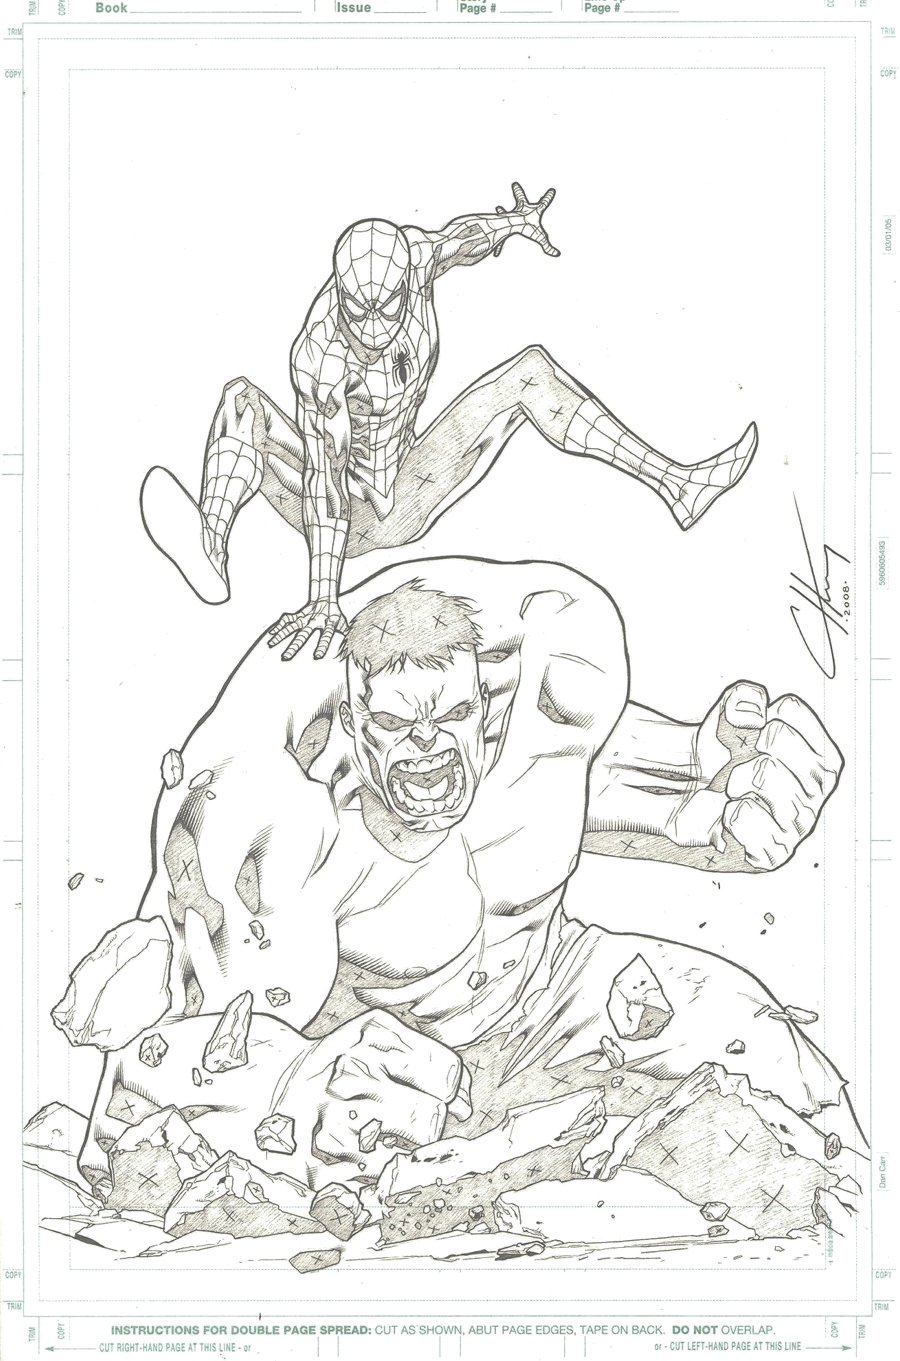 Spider-Man Magazine #1 Cover (Spider-Man Battles The HULK!) 2008